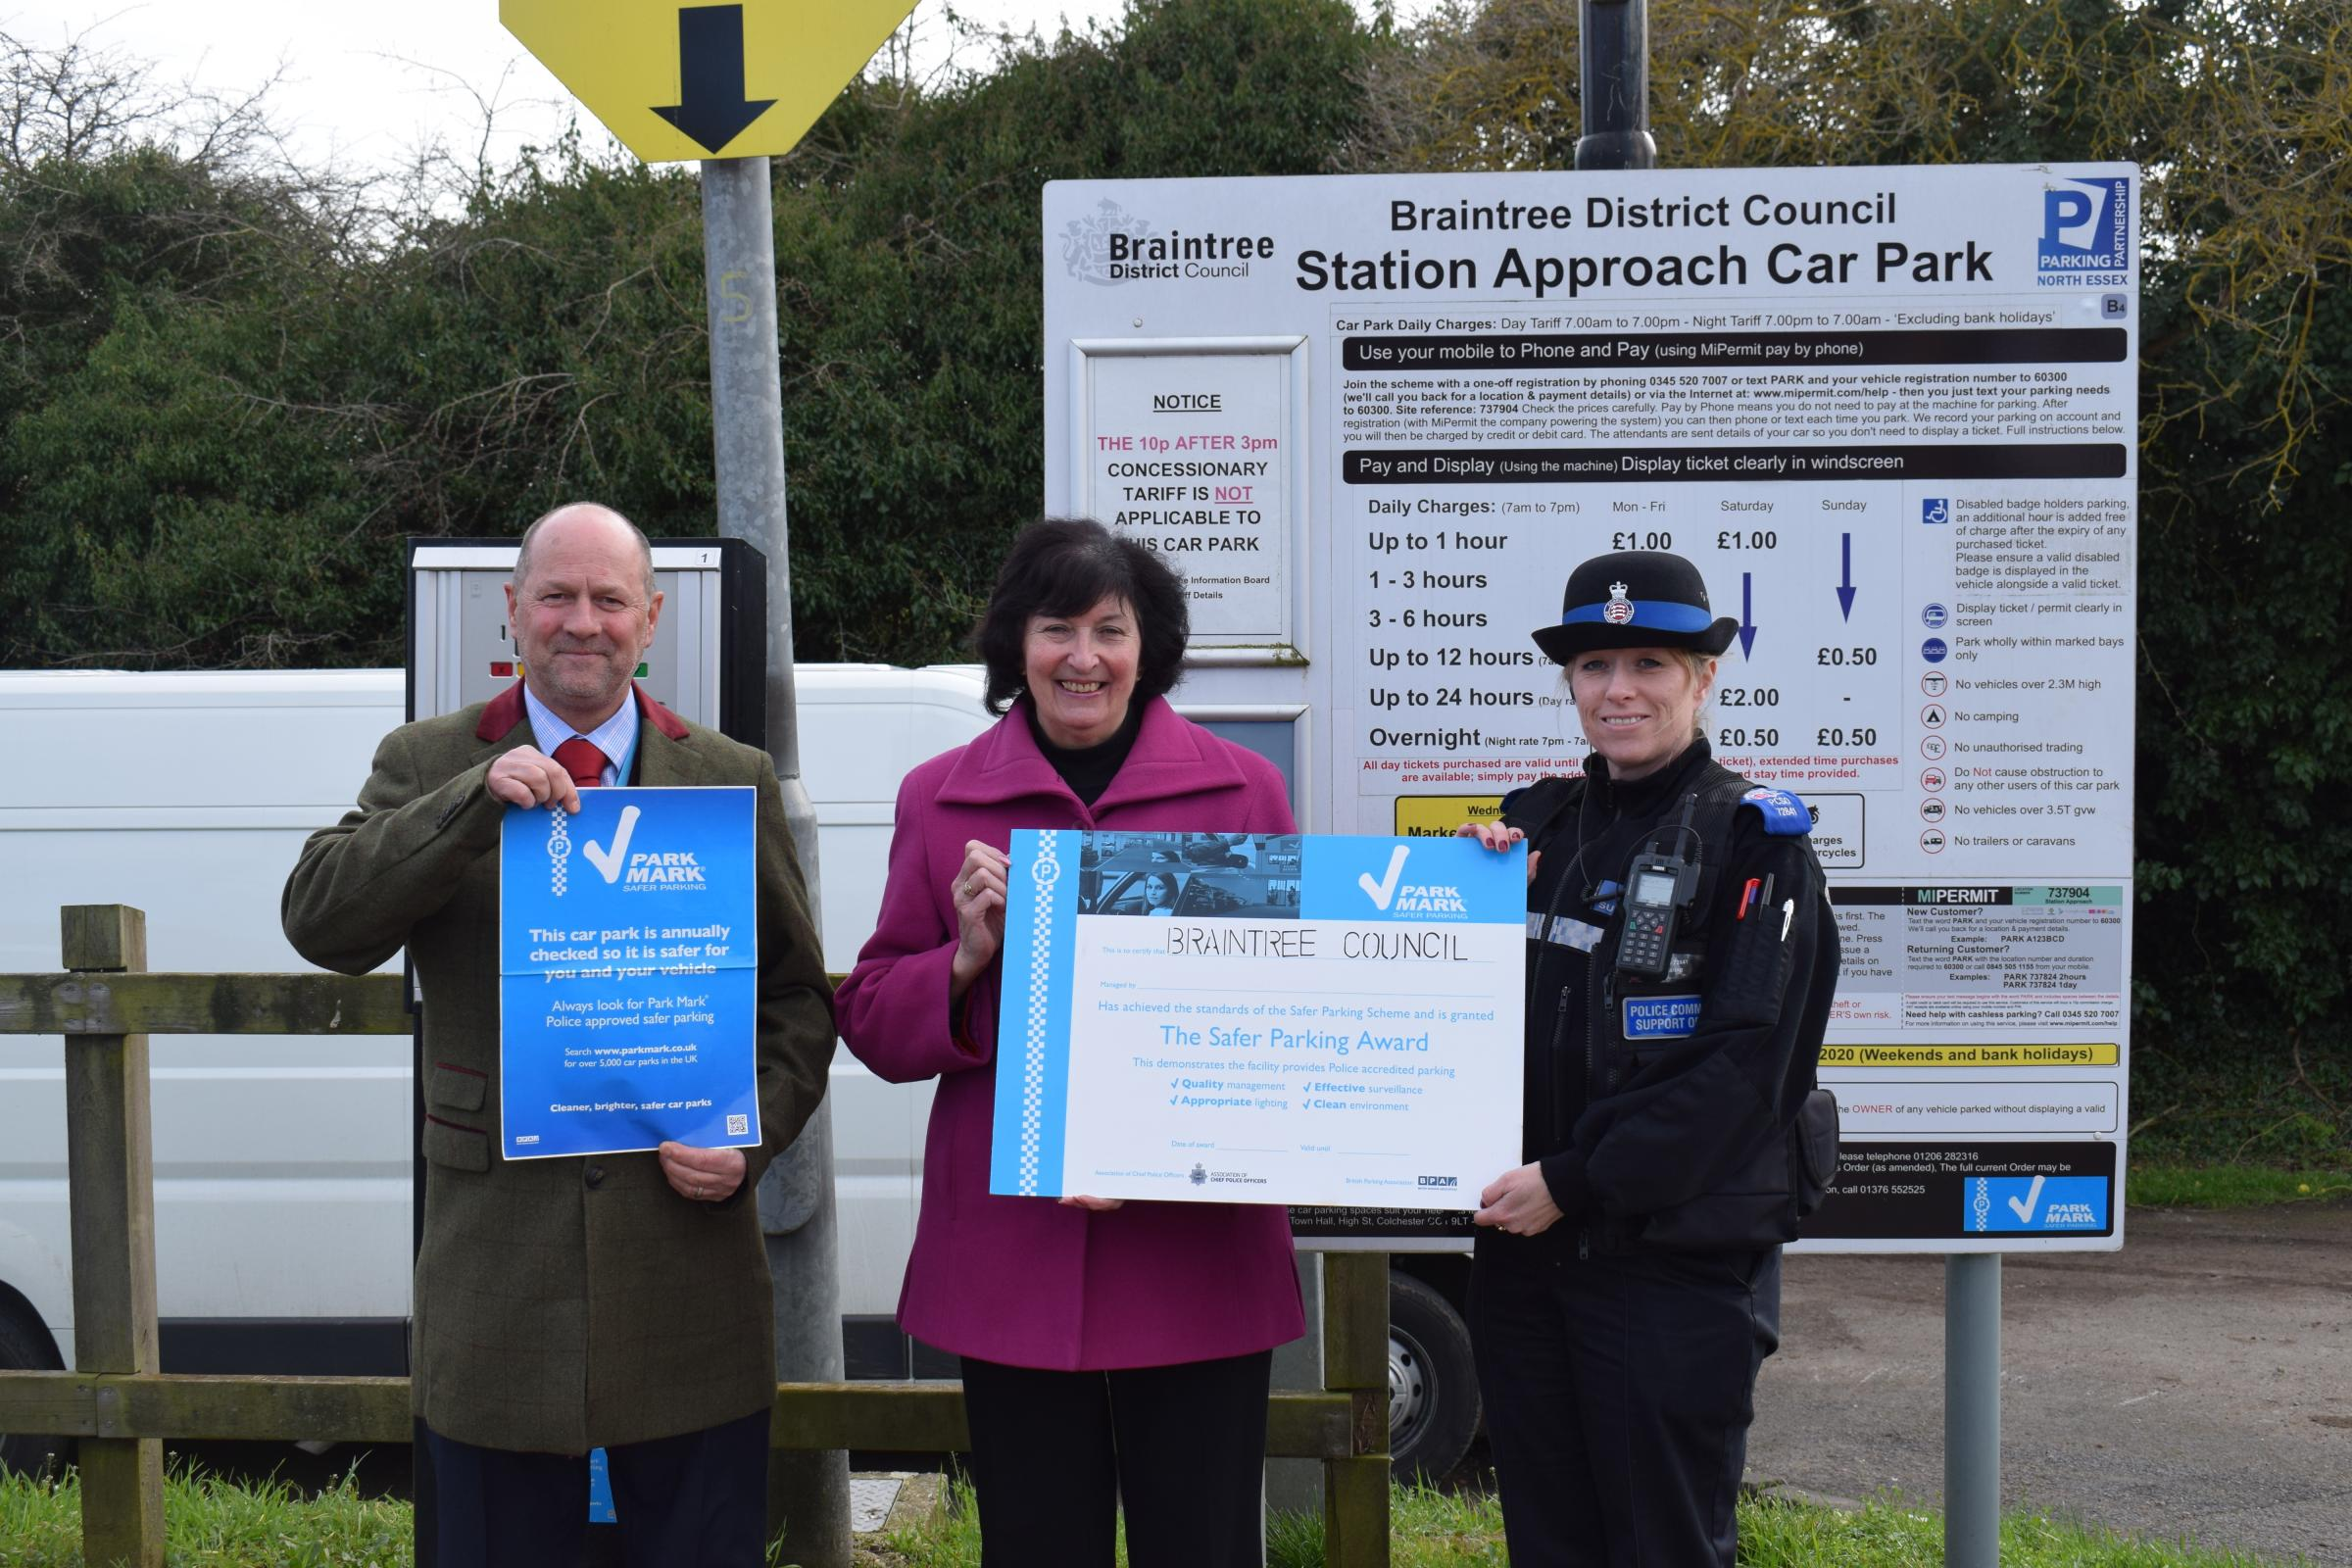 (left) Graham Chapman, Area Manager for British Parking Association, Councillor Wendy Schmitt, Cabinet Member for Environment and Place at Braintree District Council and Lorraine Keating, PSCO at Essex Police (right) at Station Approach car park in Braint